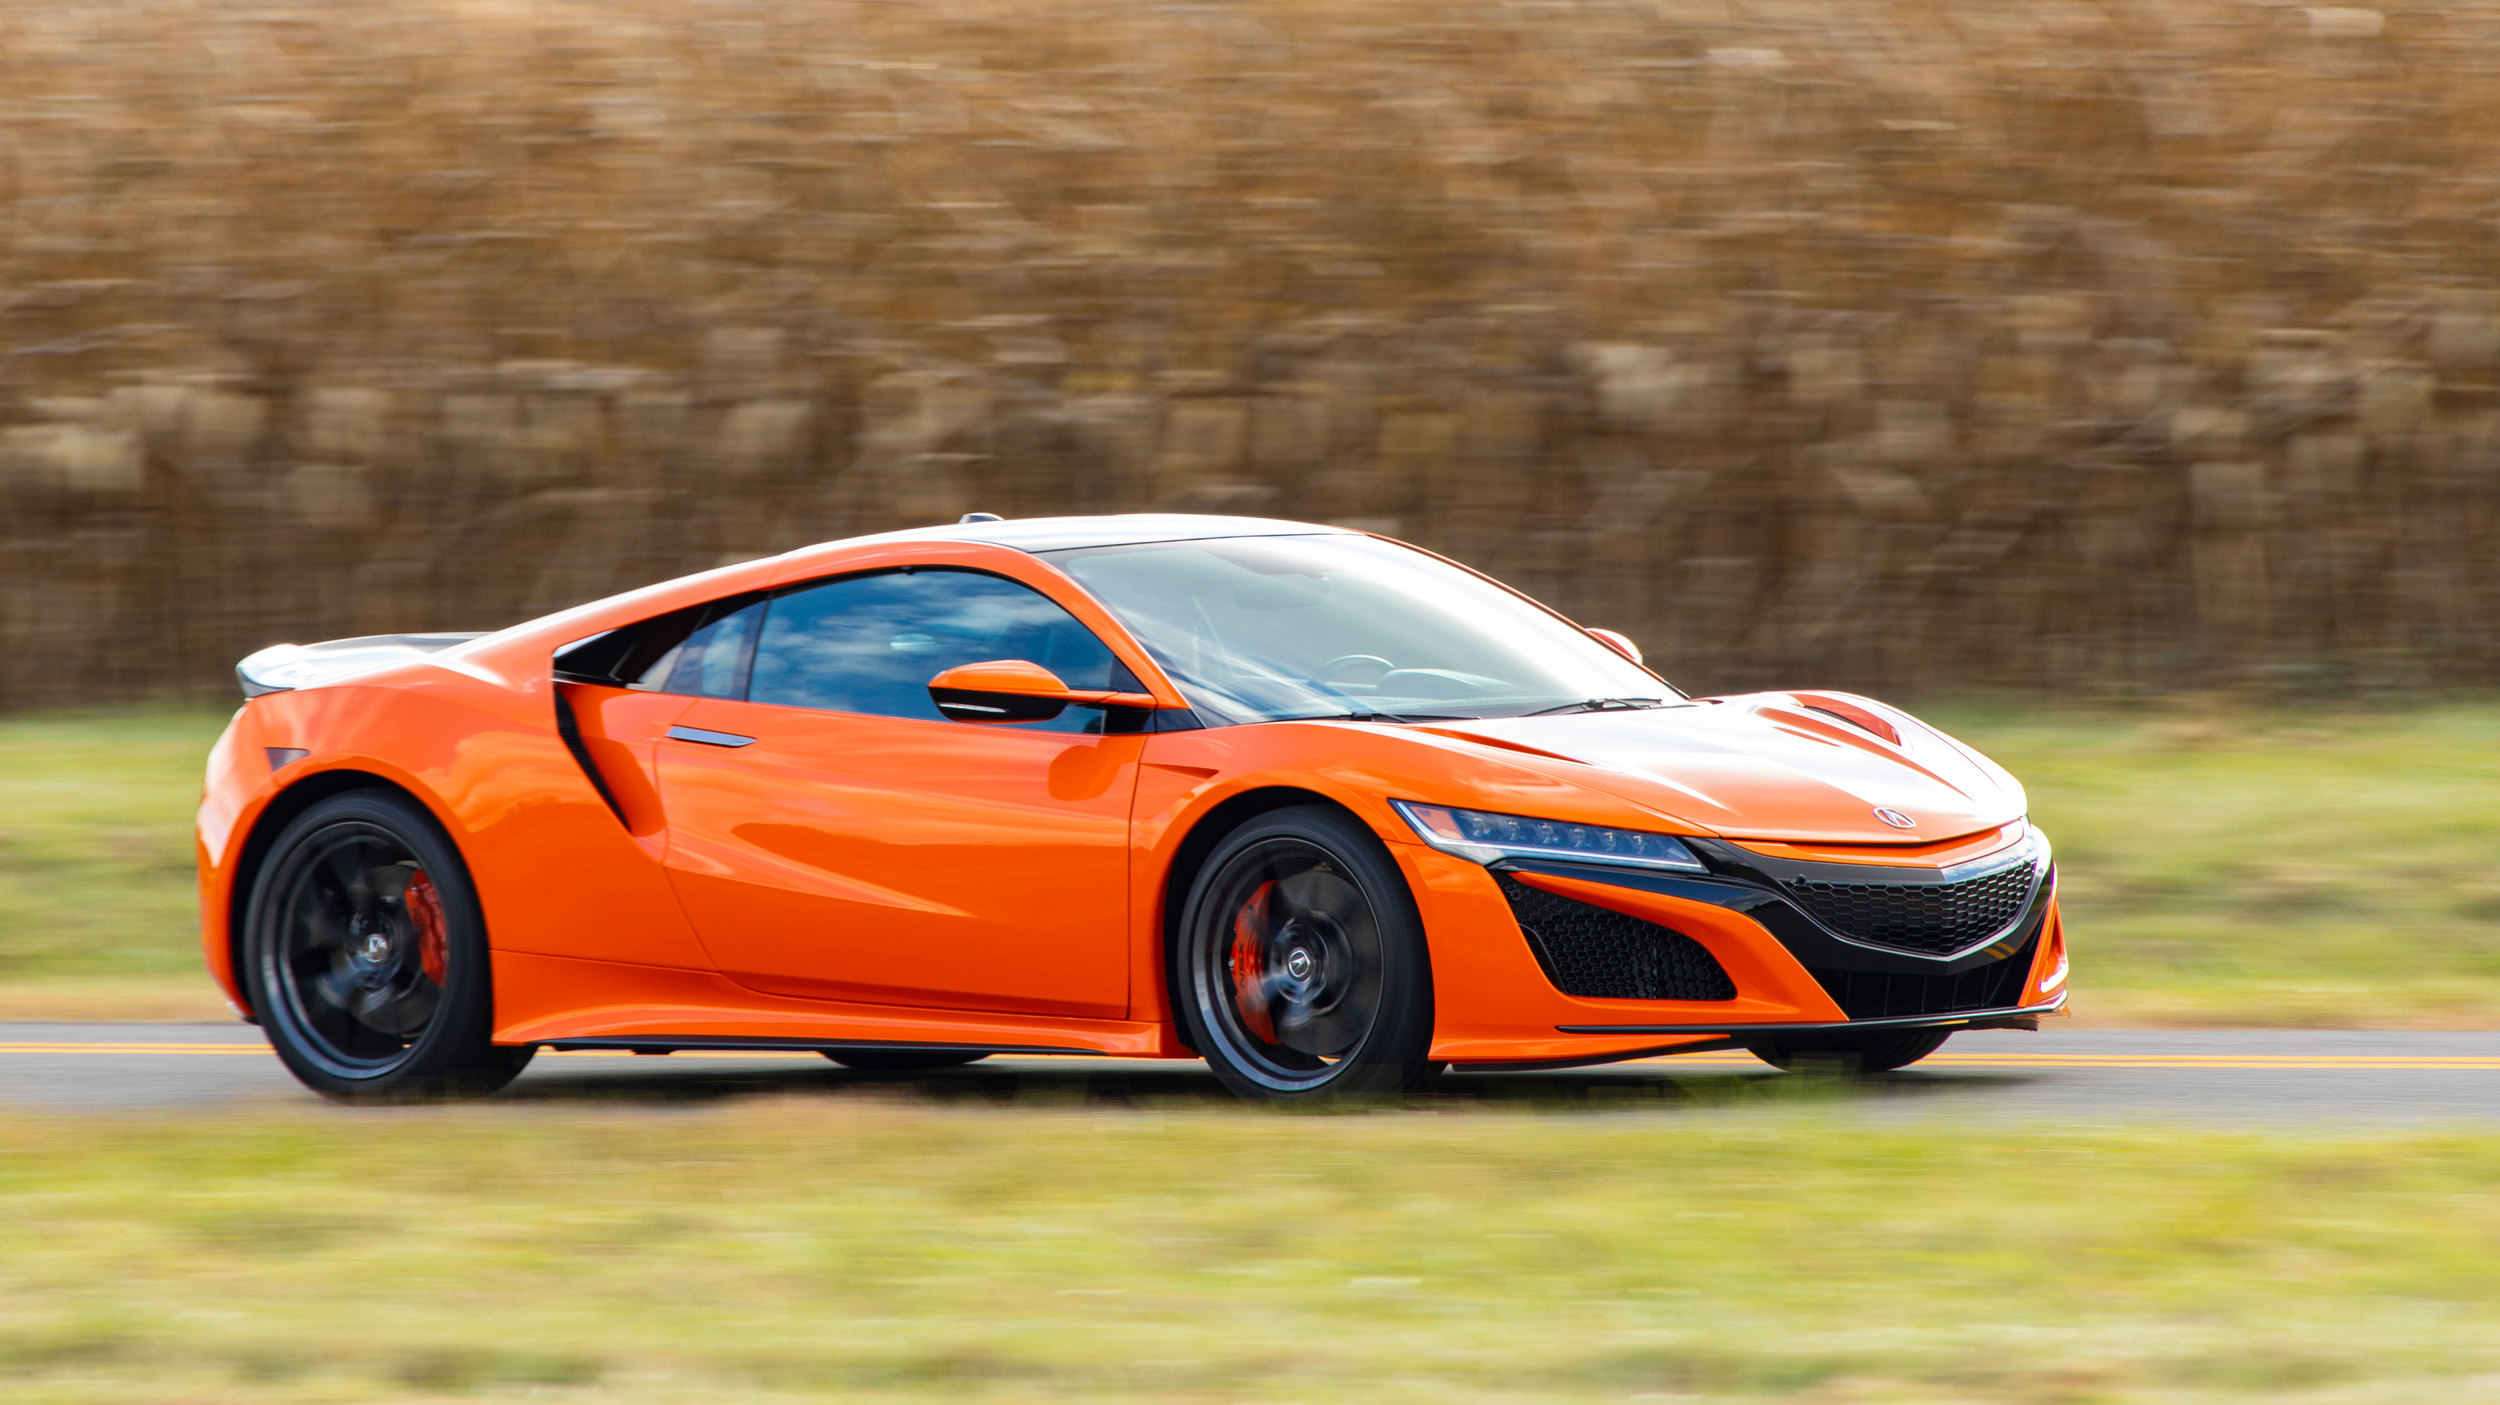 2019 acura nsx review on track